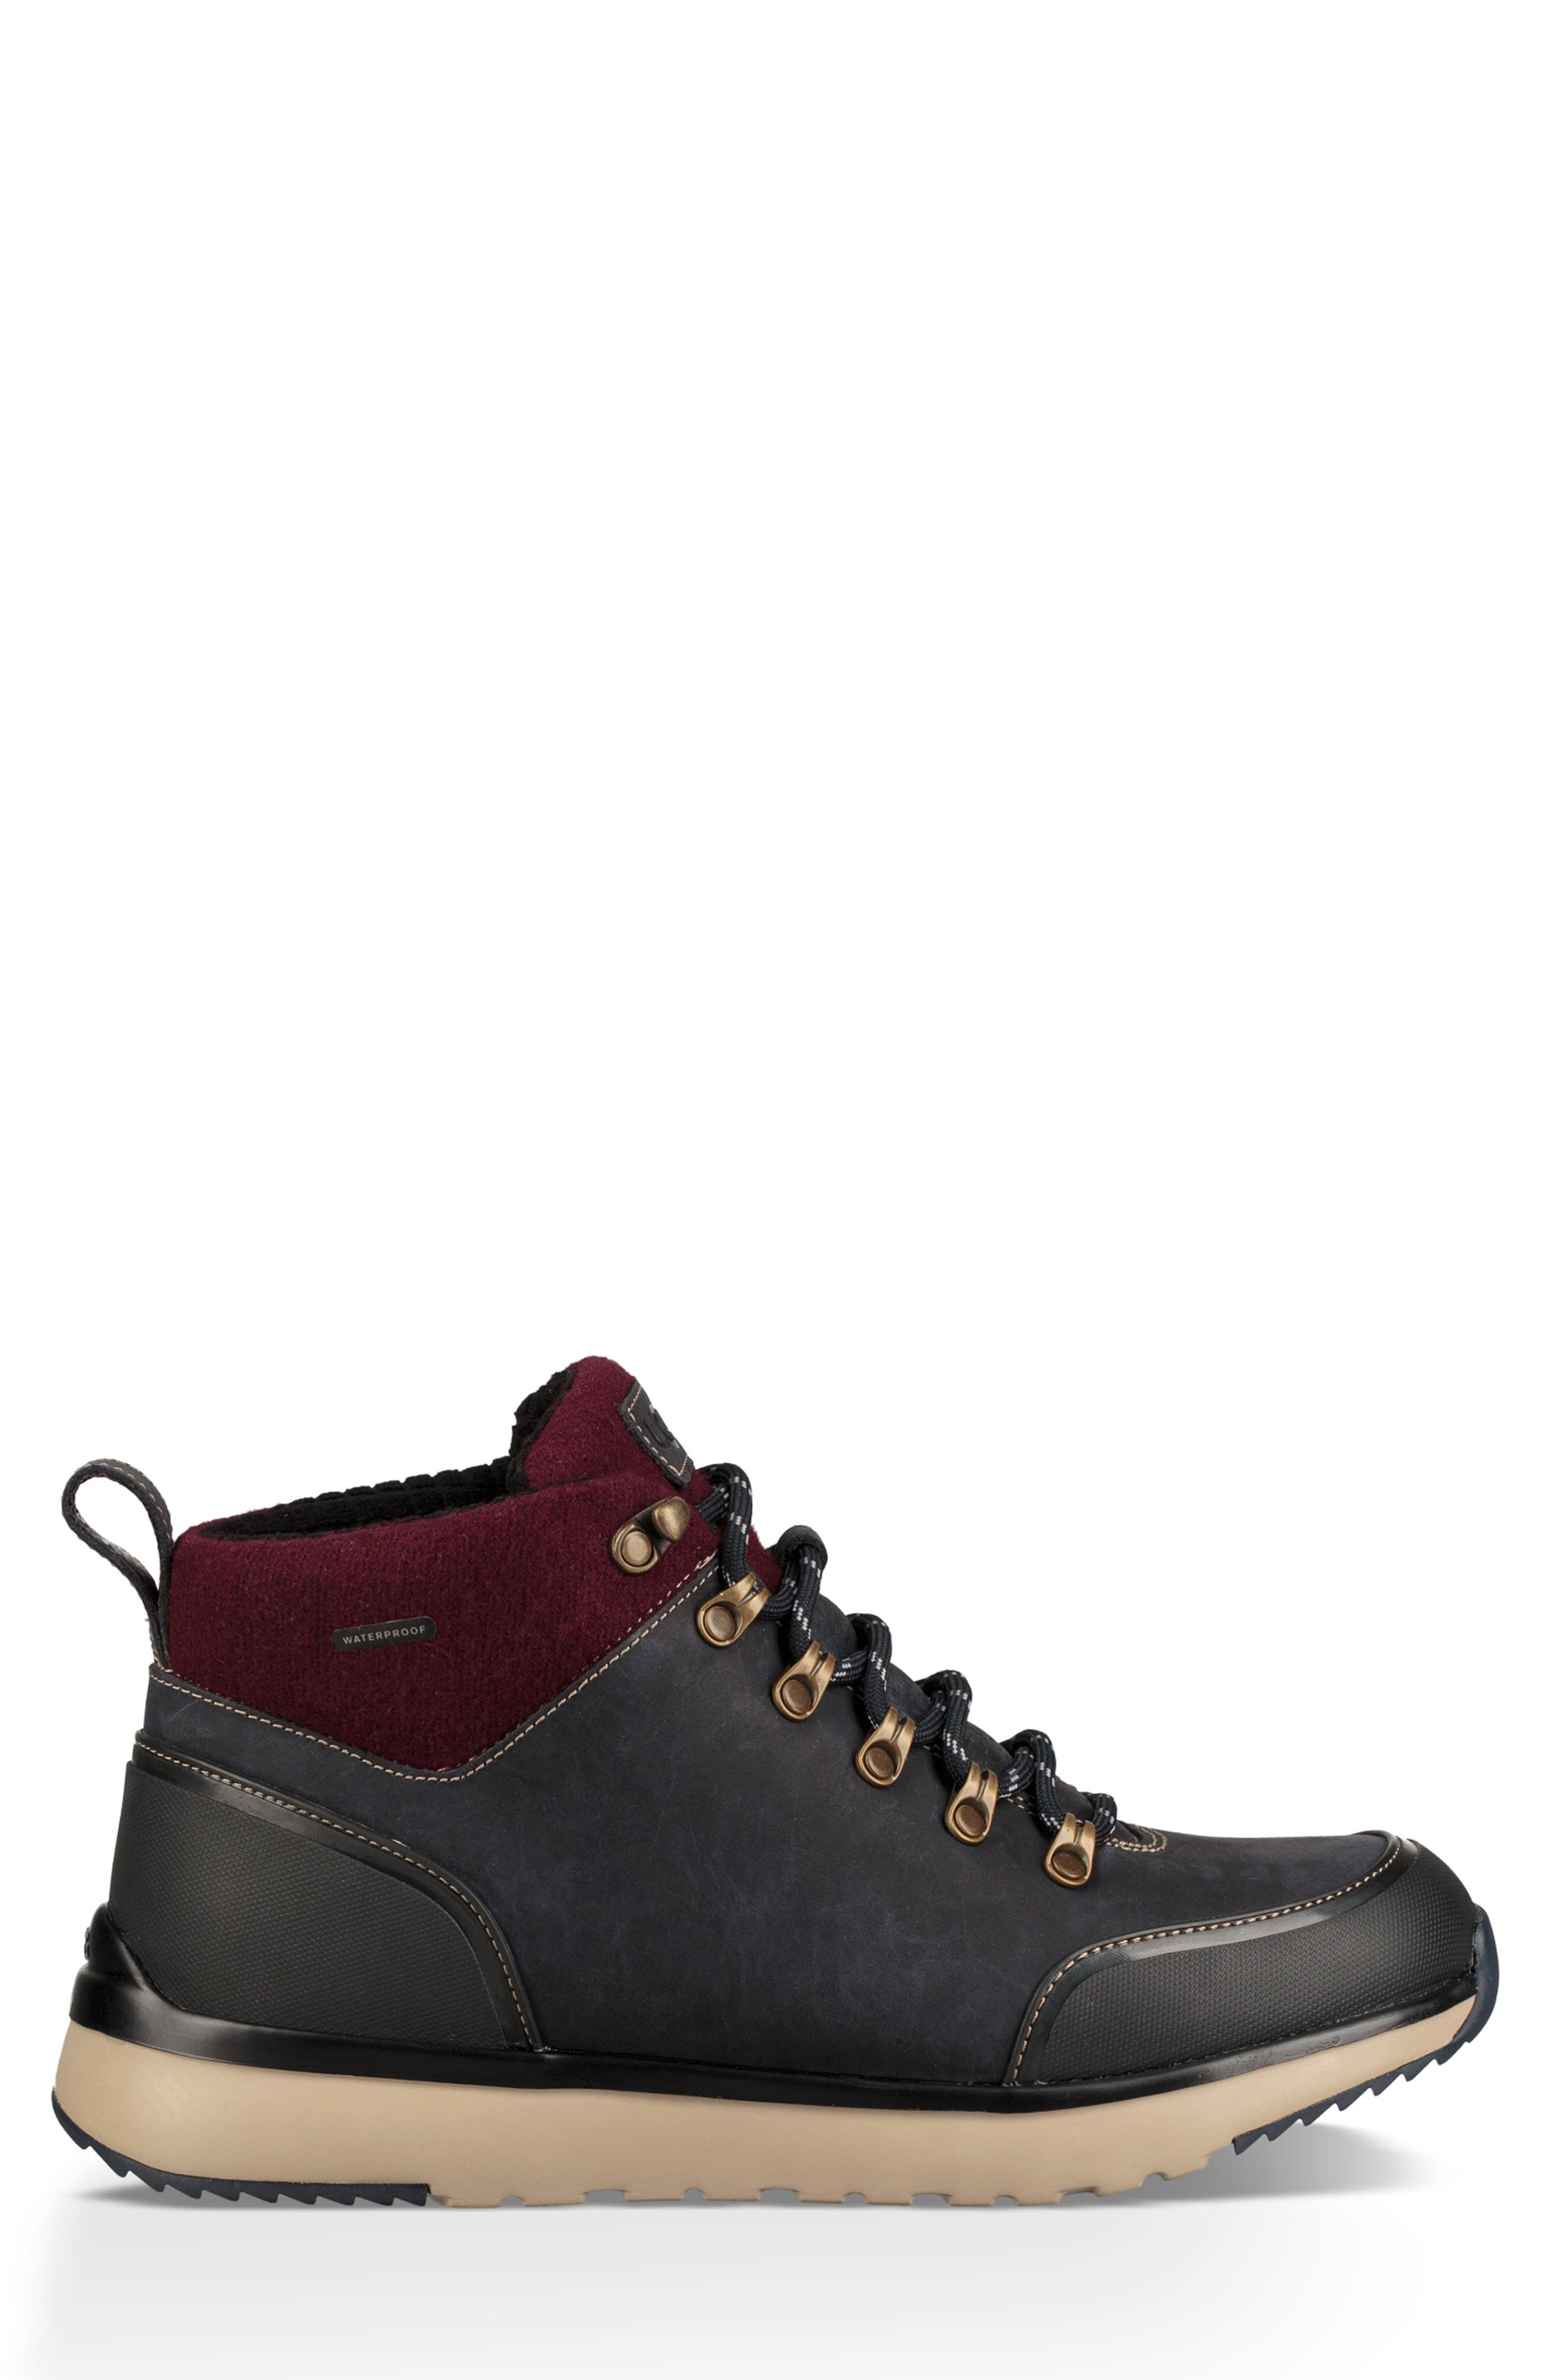 Olivert Hiking Waterproof Boot,                             Alternate thumbnail 3, color,                             NAVY